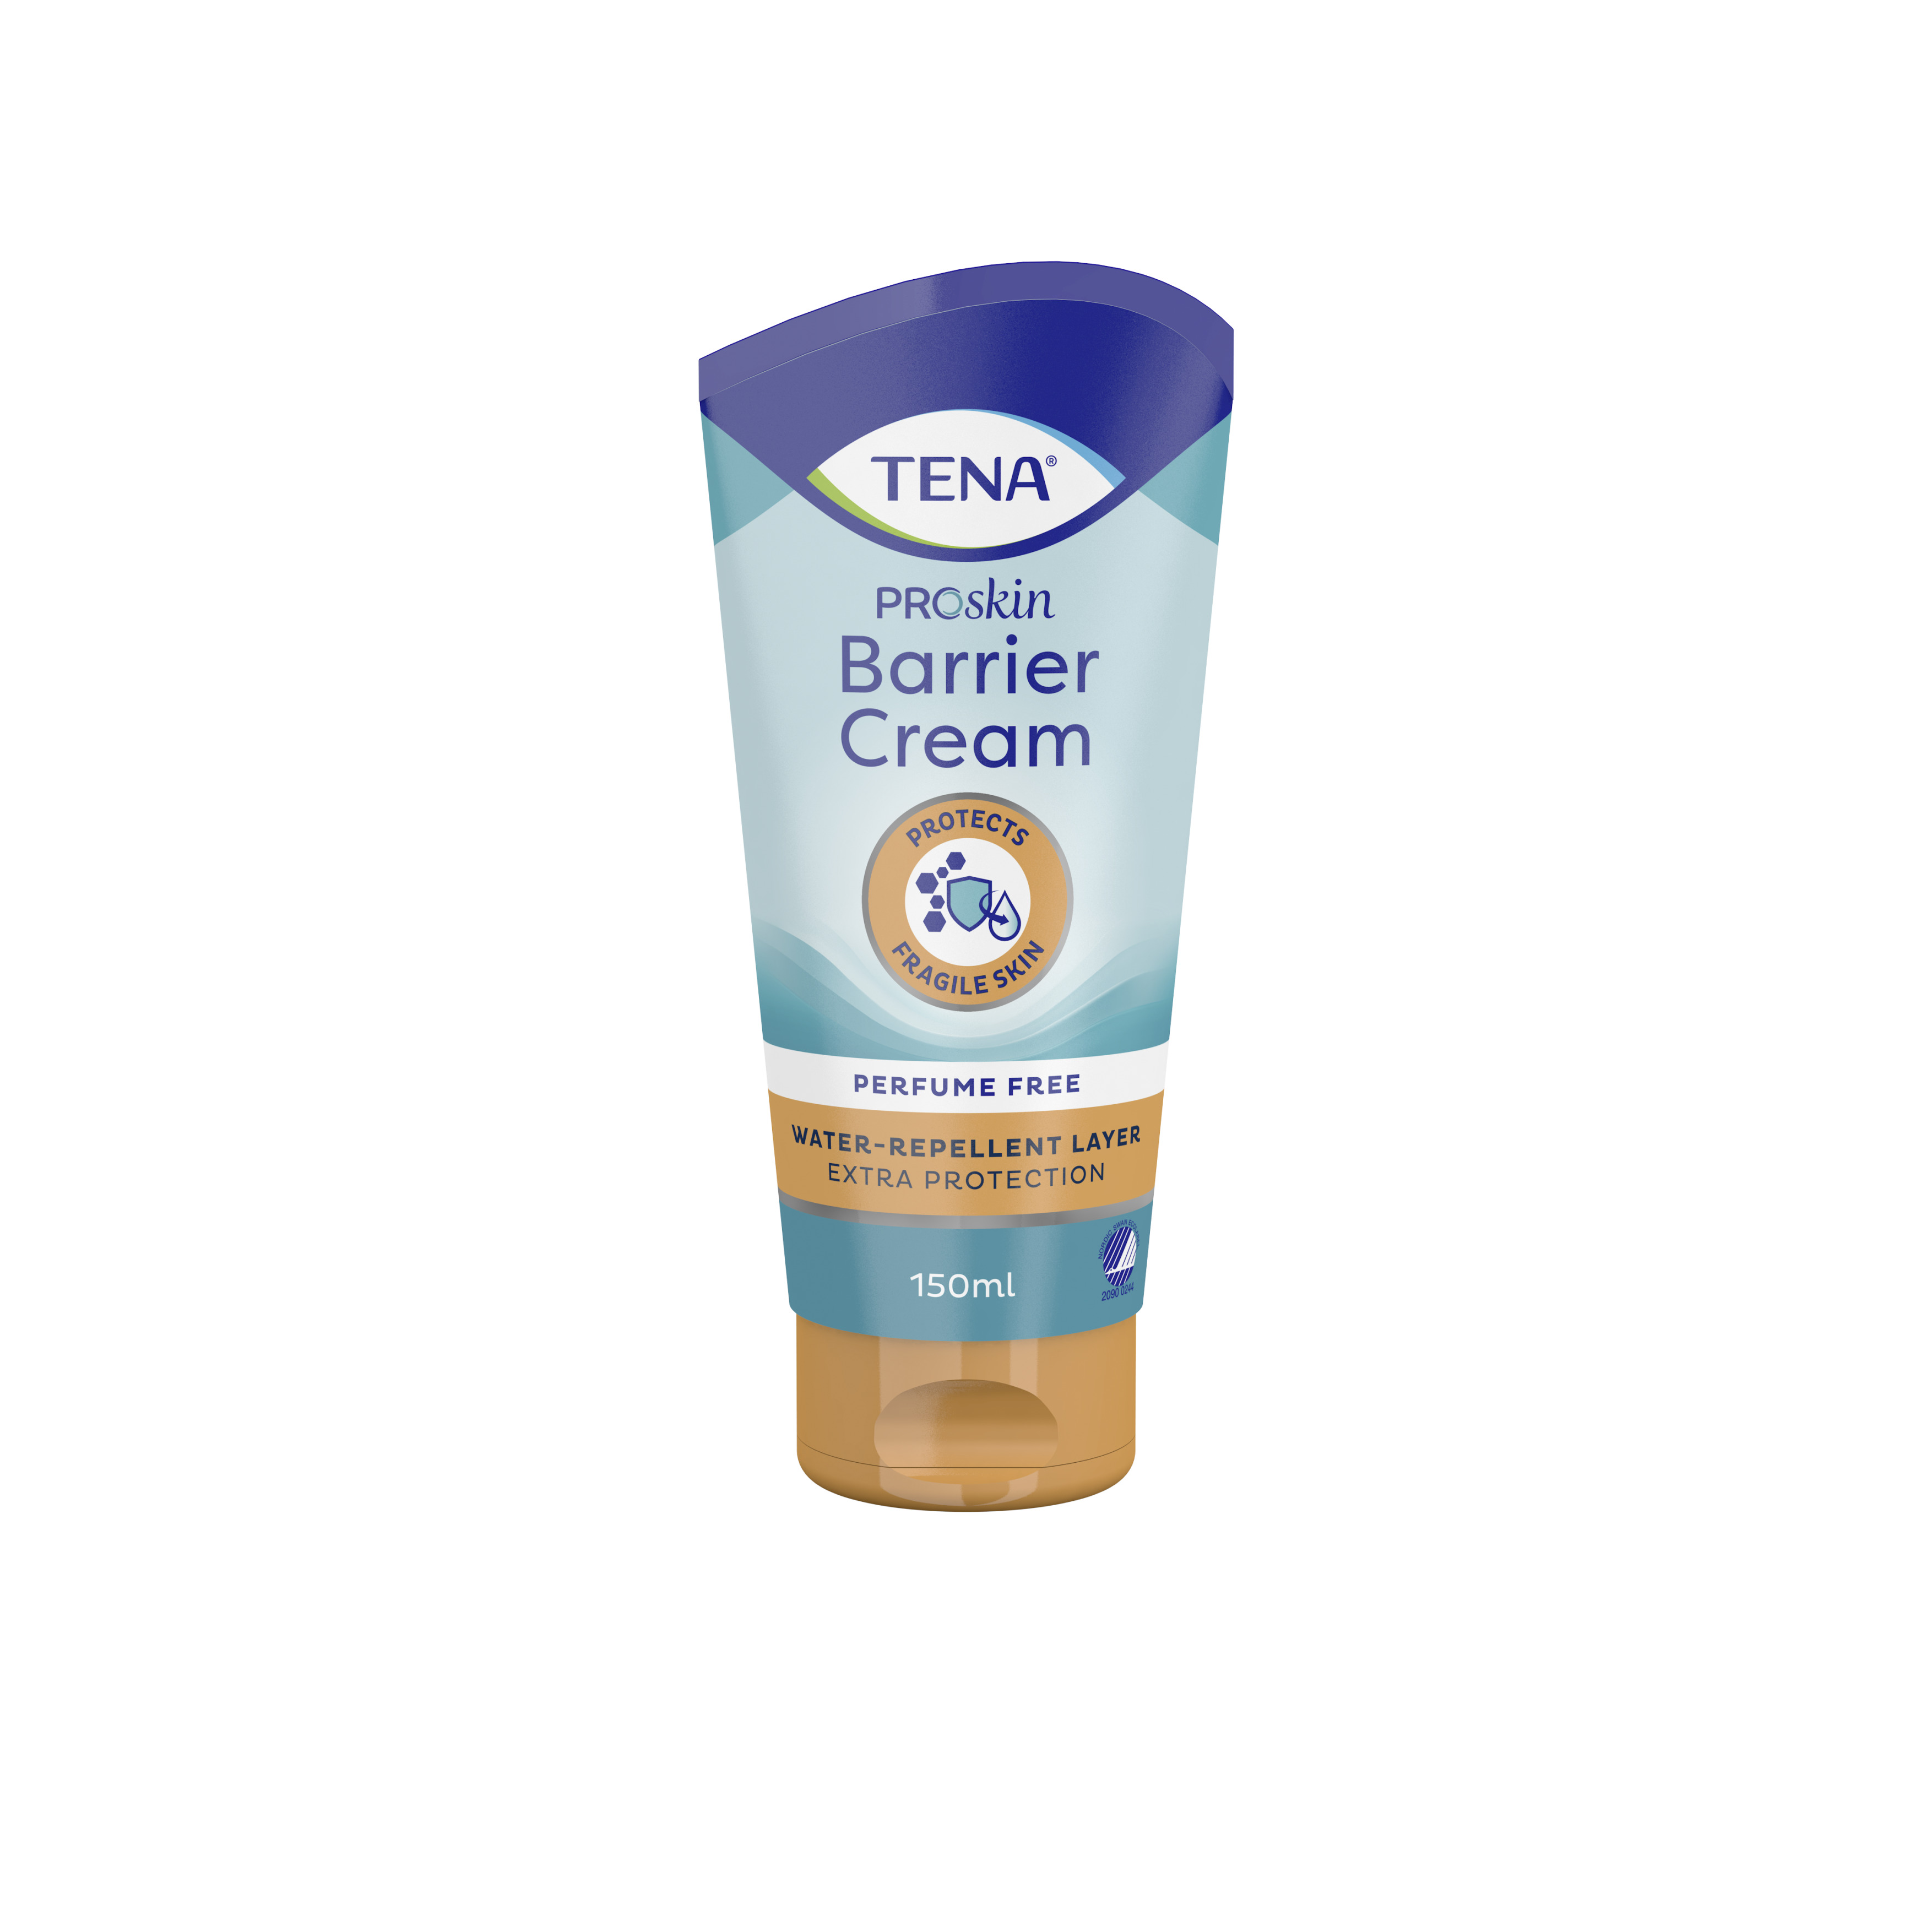 Tena barrier cream product